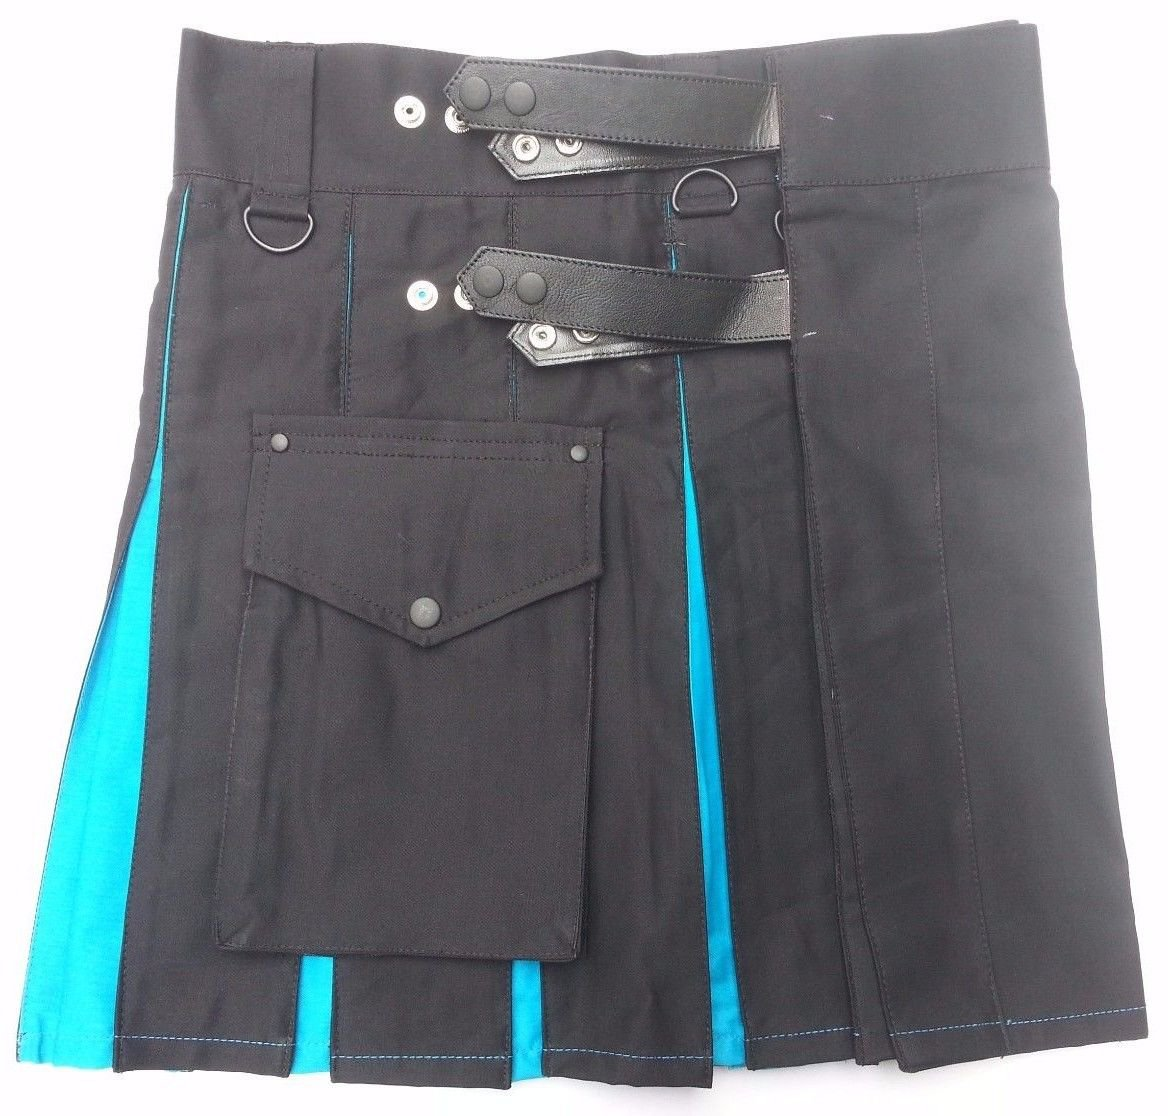 "44"" Ladies TDK Black & Blue Cotton Hybrid Kilt, Leather Straps Tactical Duty Kilt Black/Blue Cotton"